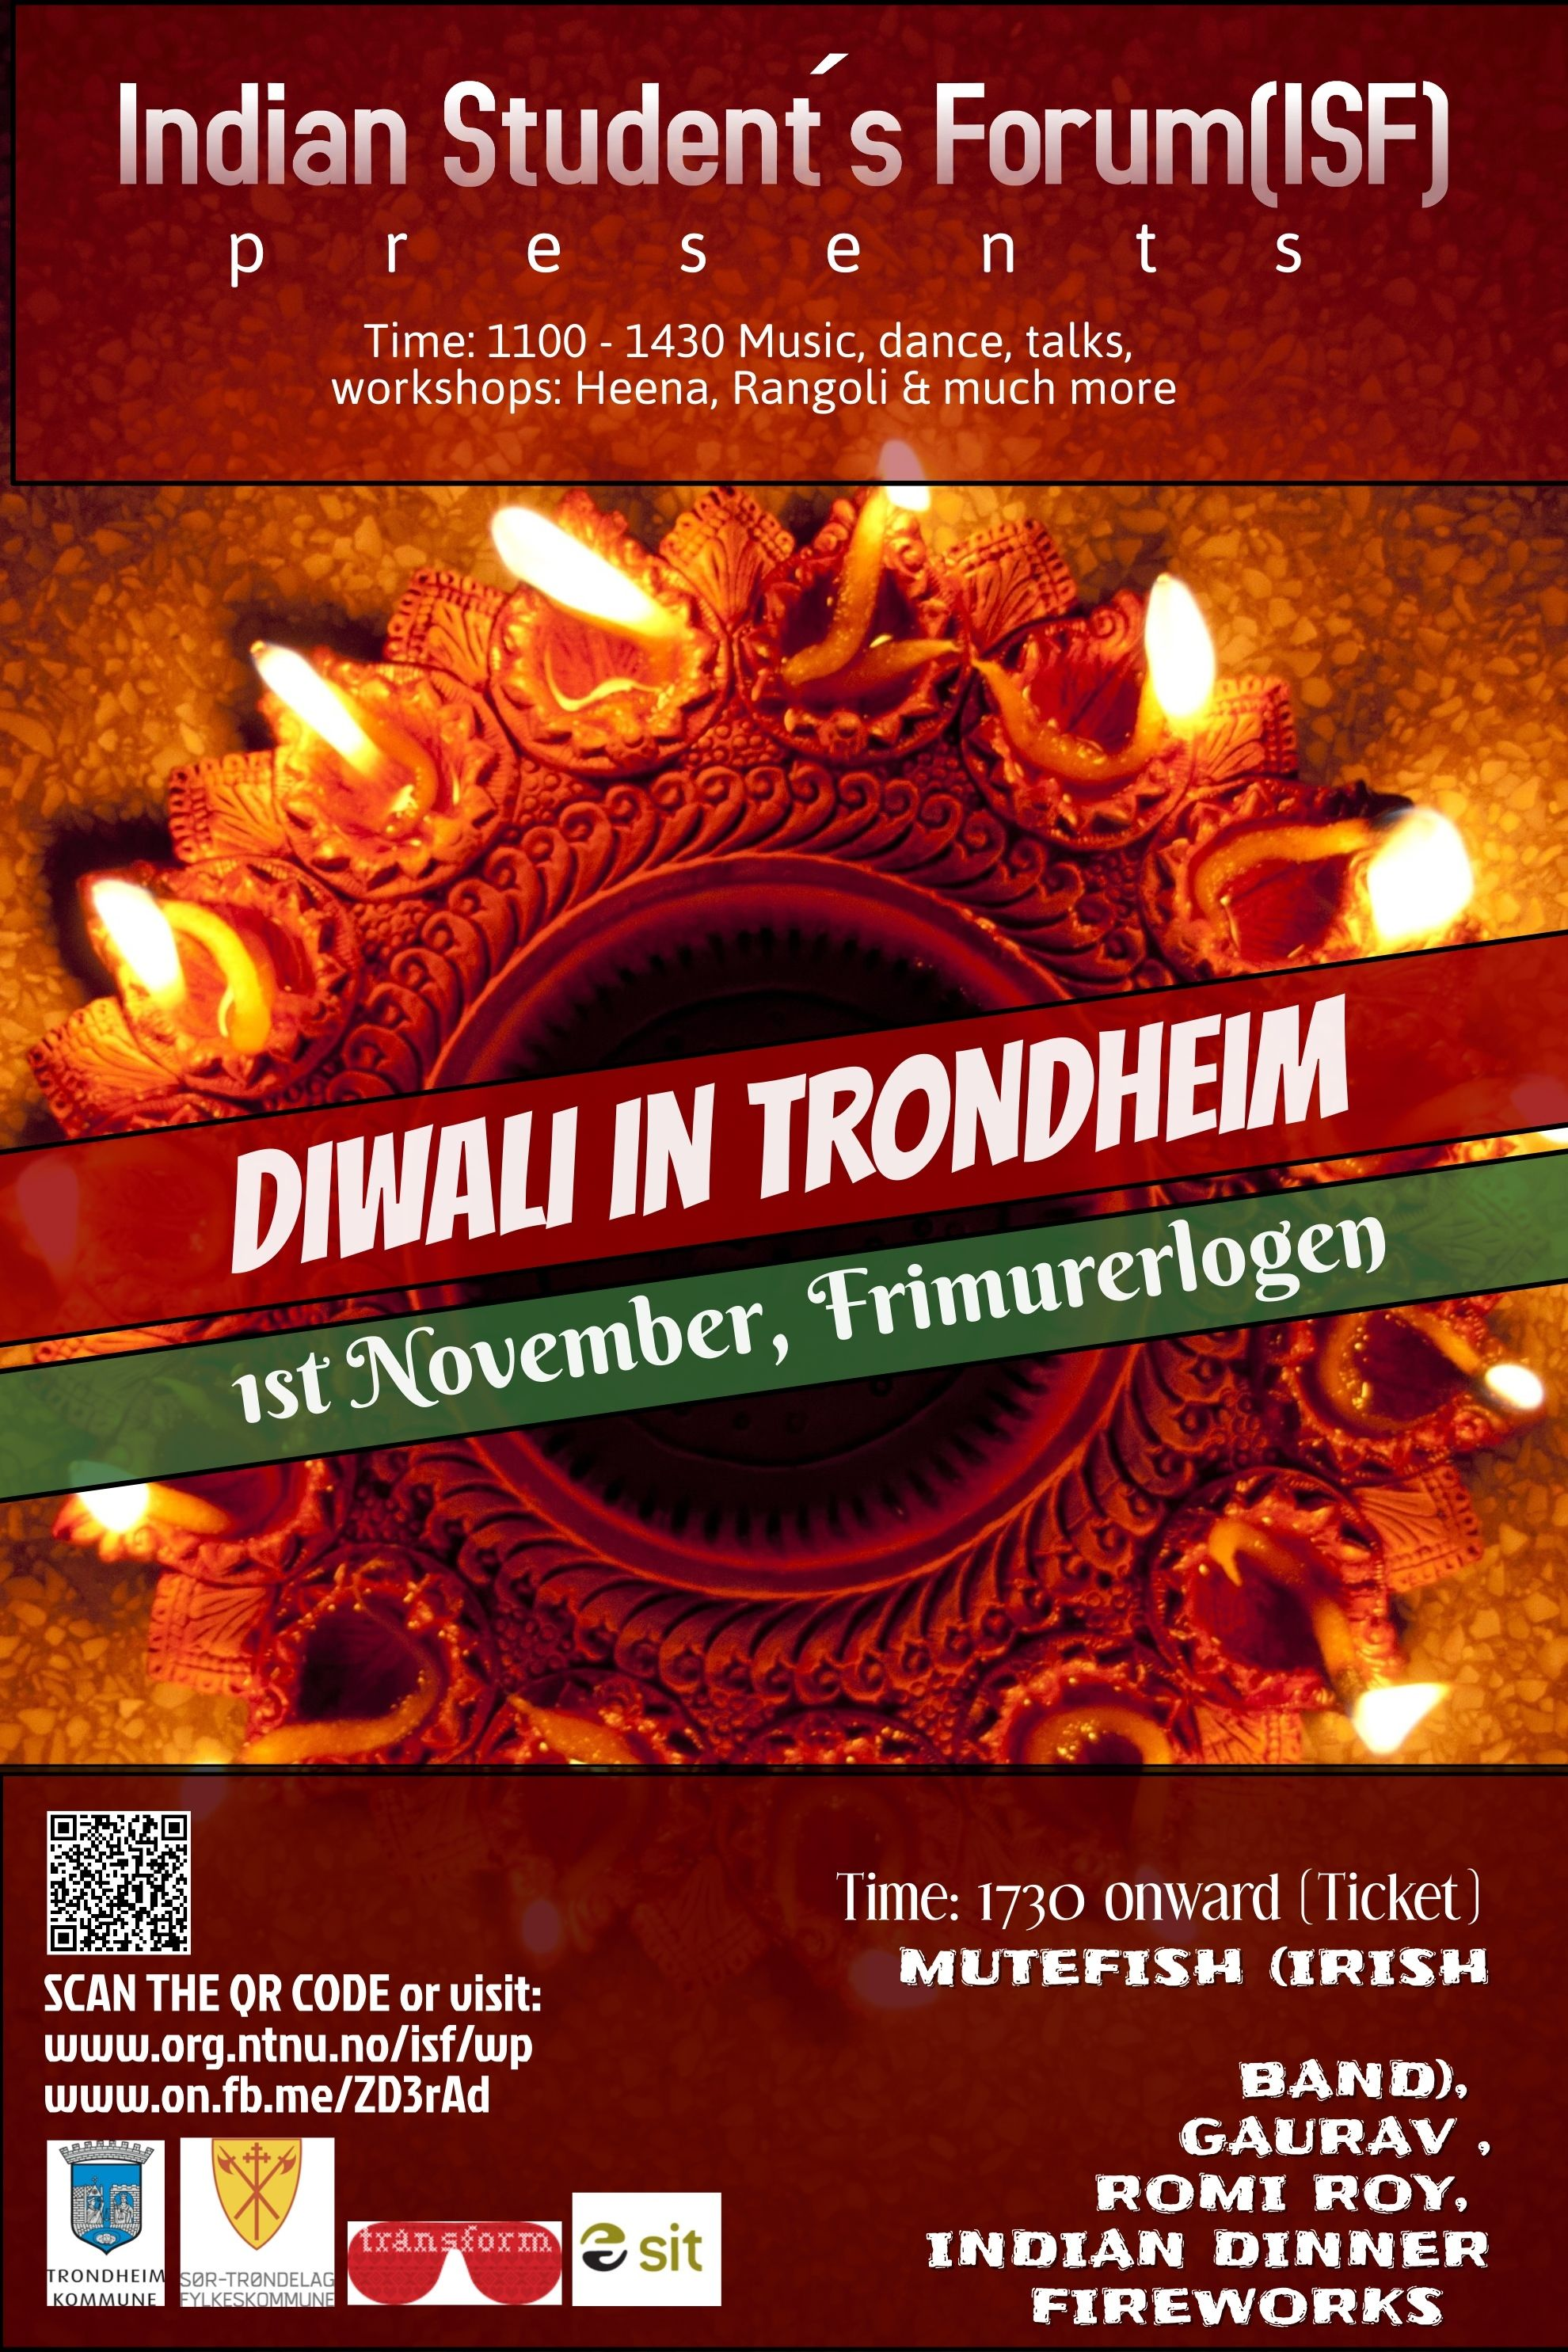 diwali flyer templates for student event diwali poster ideas